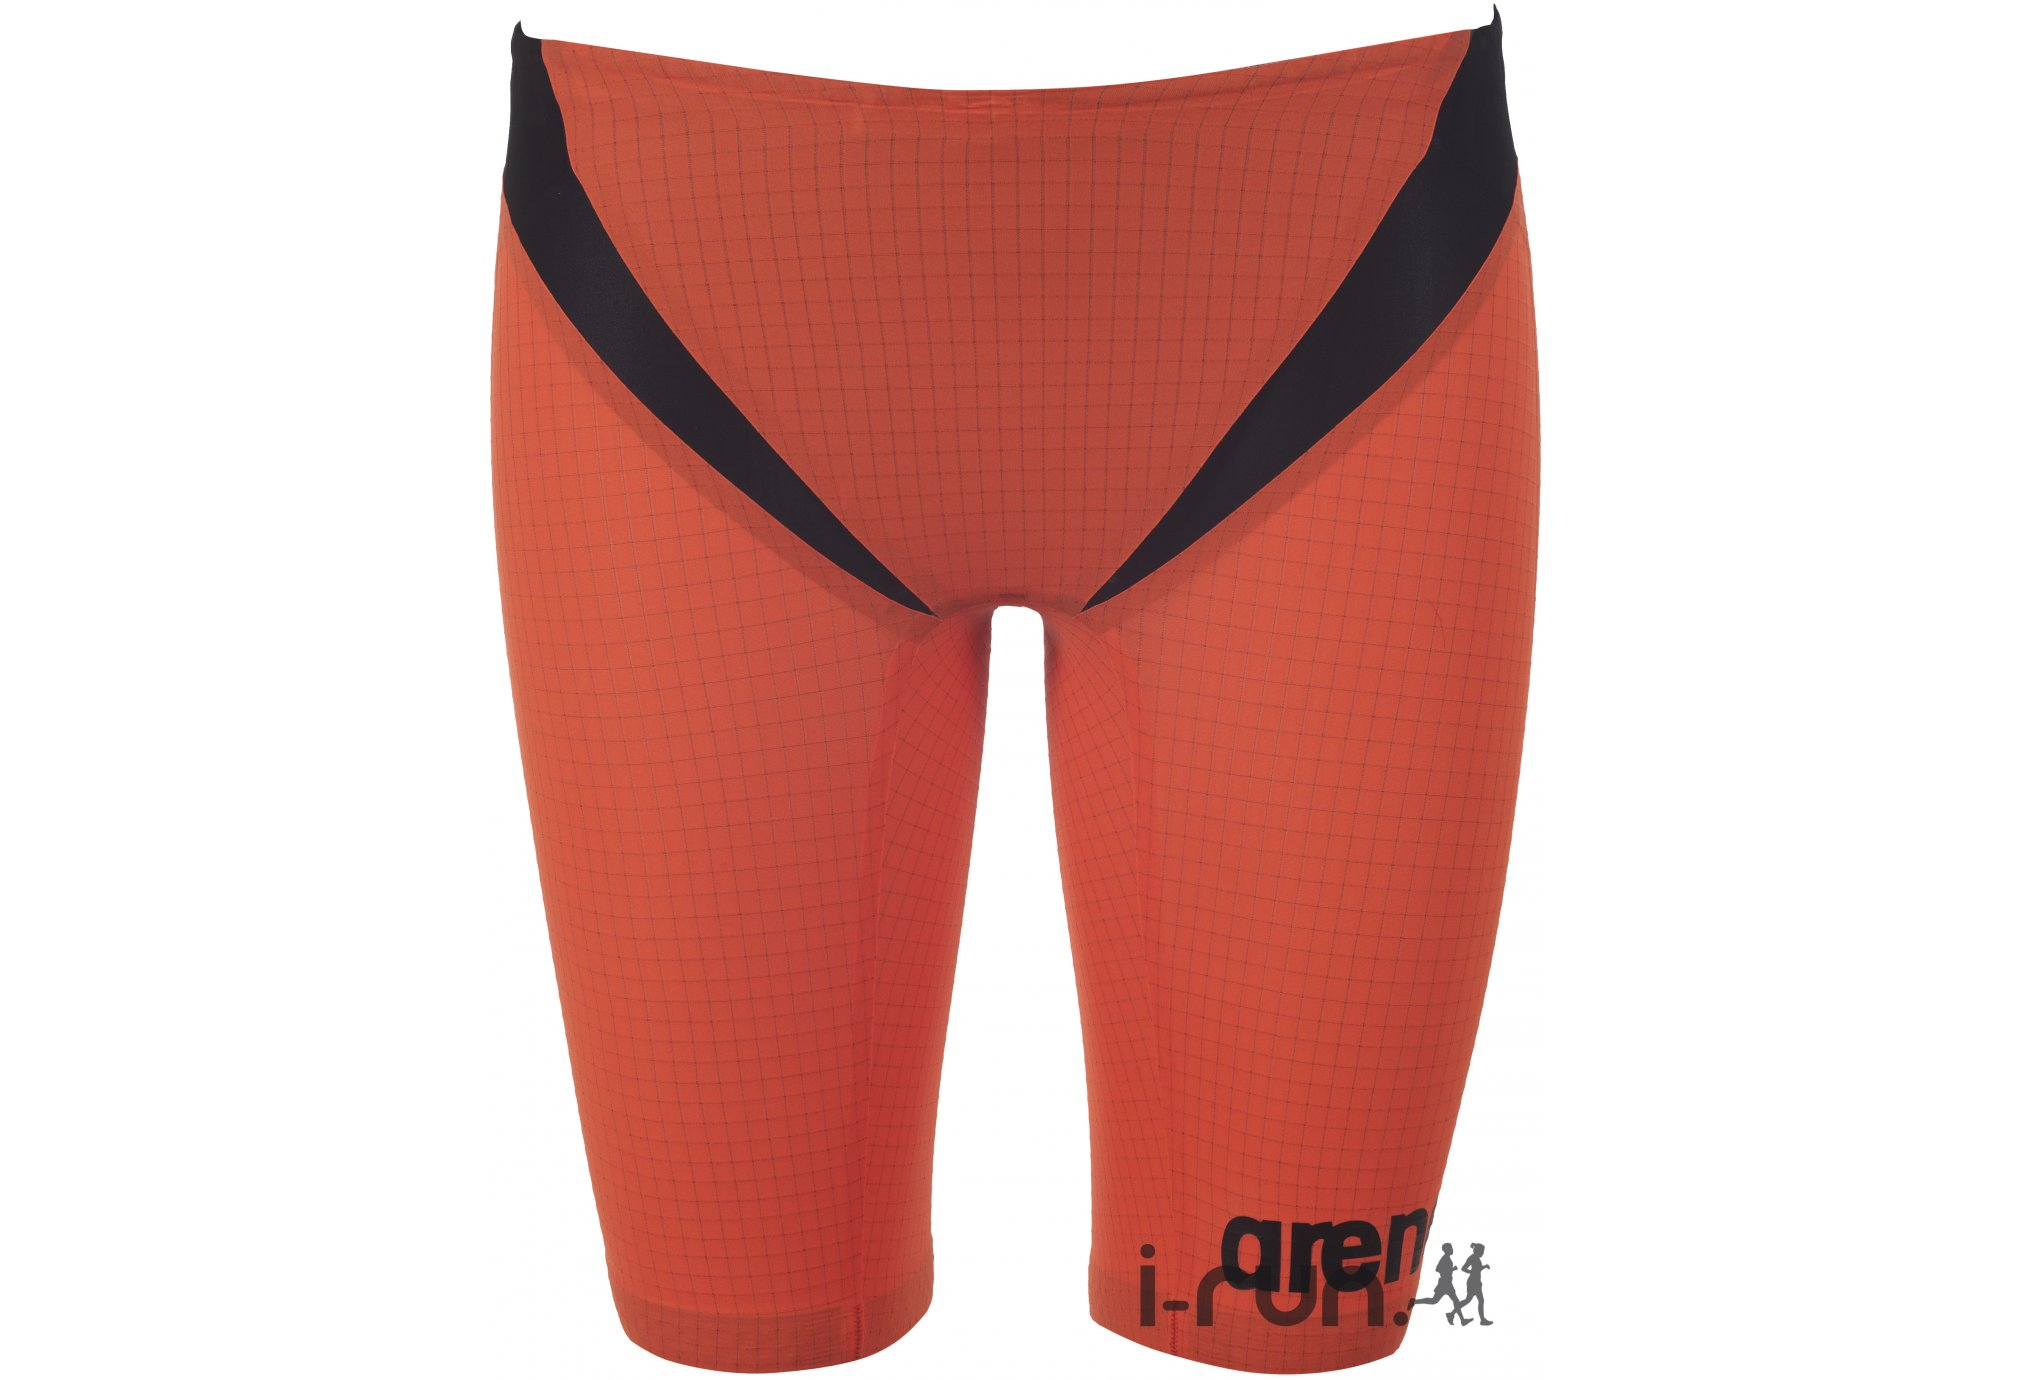 Arena cuissard carbo pro tri m pas cher destockage arena running cuissard c - Destockage fitness avis ...